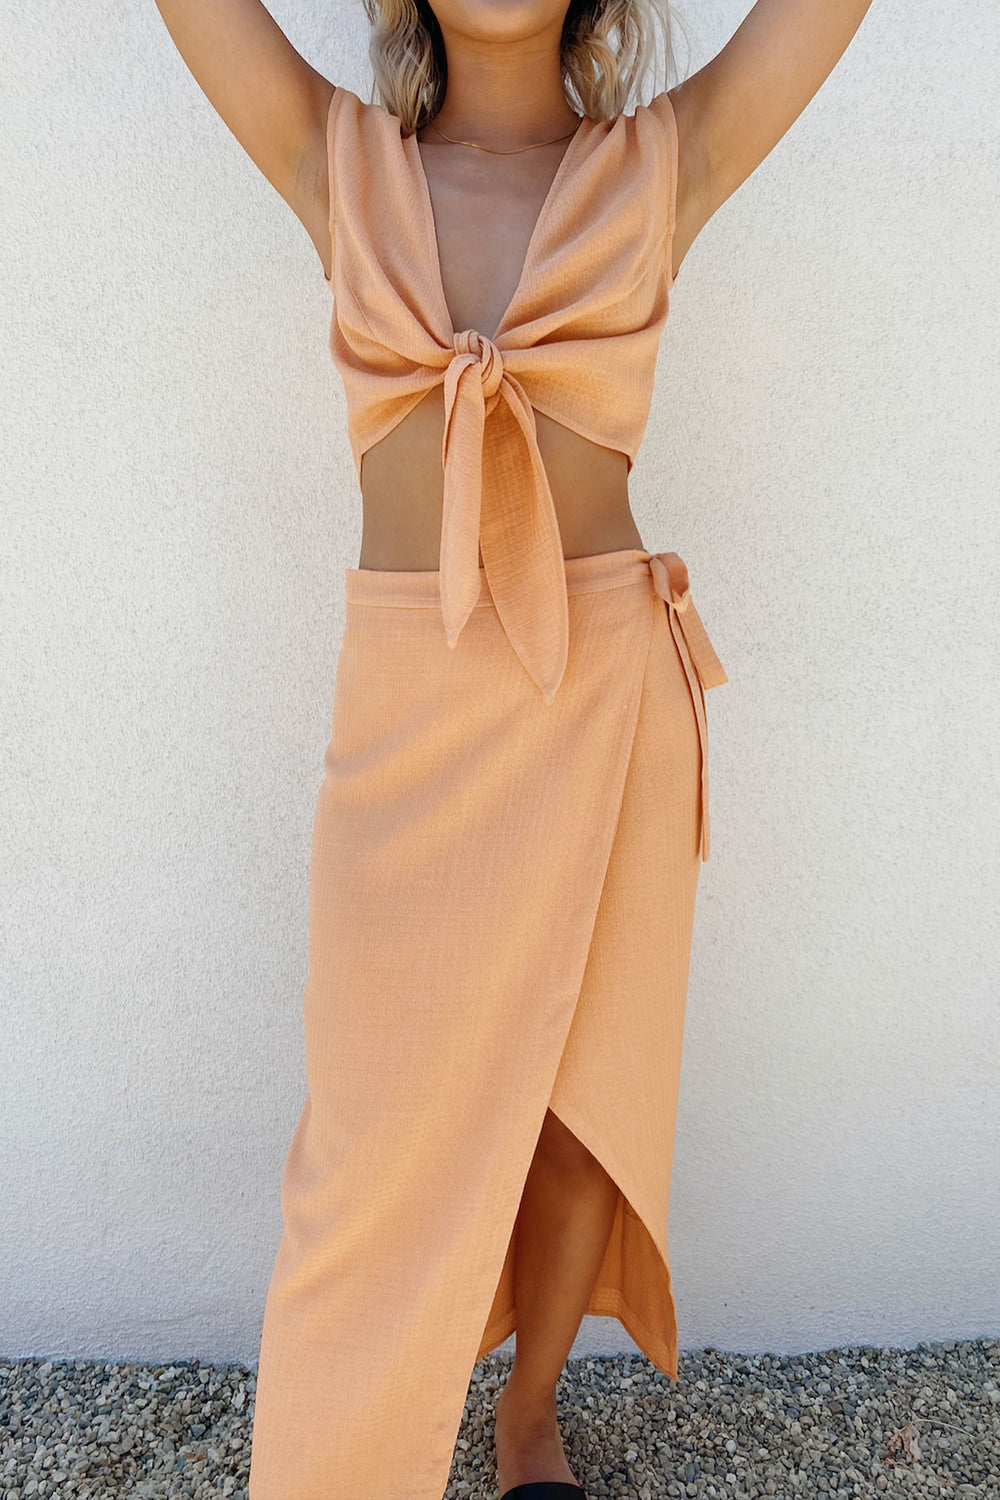 Valentina Top in Peach - Whimsy & Row